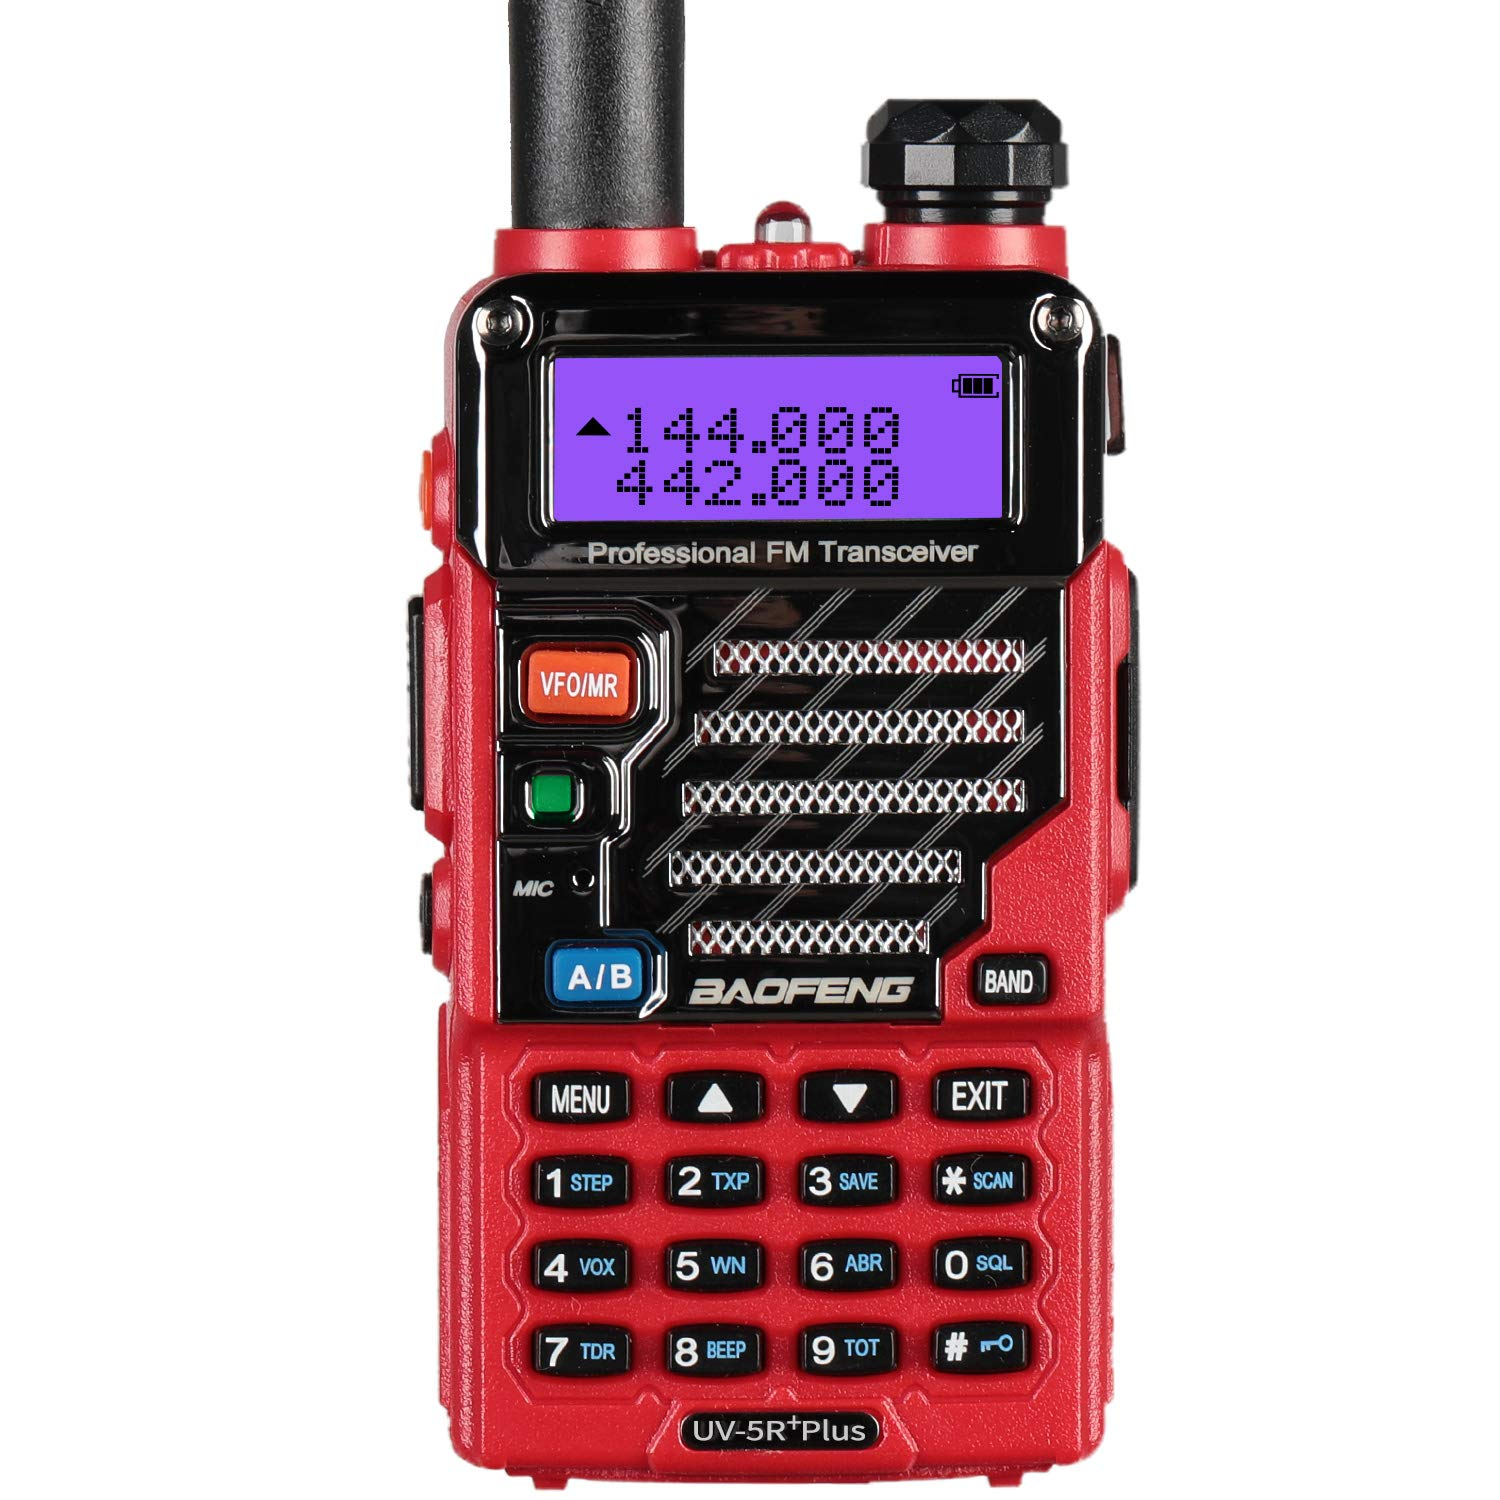 BaoFeng UV-5R Plus Qualette Two way Radio (Flame Red) by BAOFENG